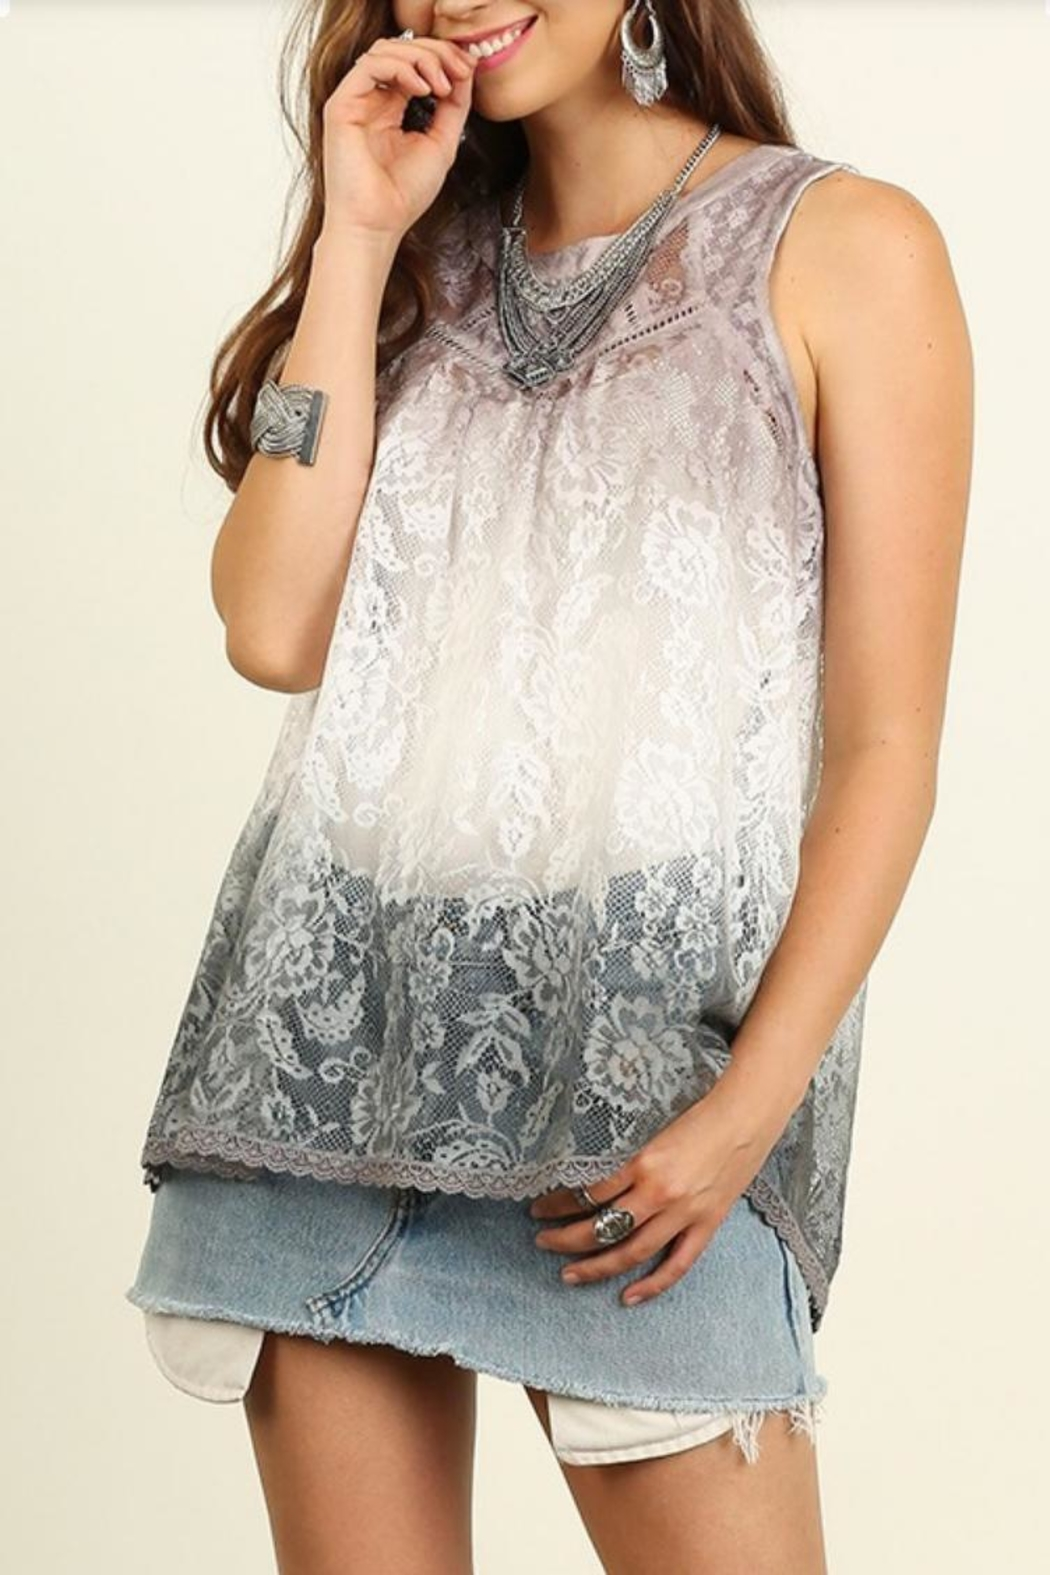 Umgee USA Sleeveless Lace Top - Main Image